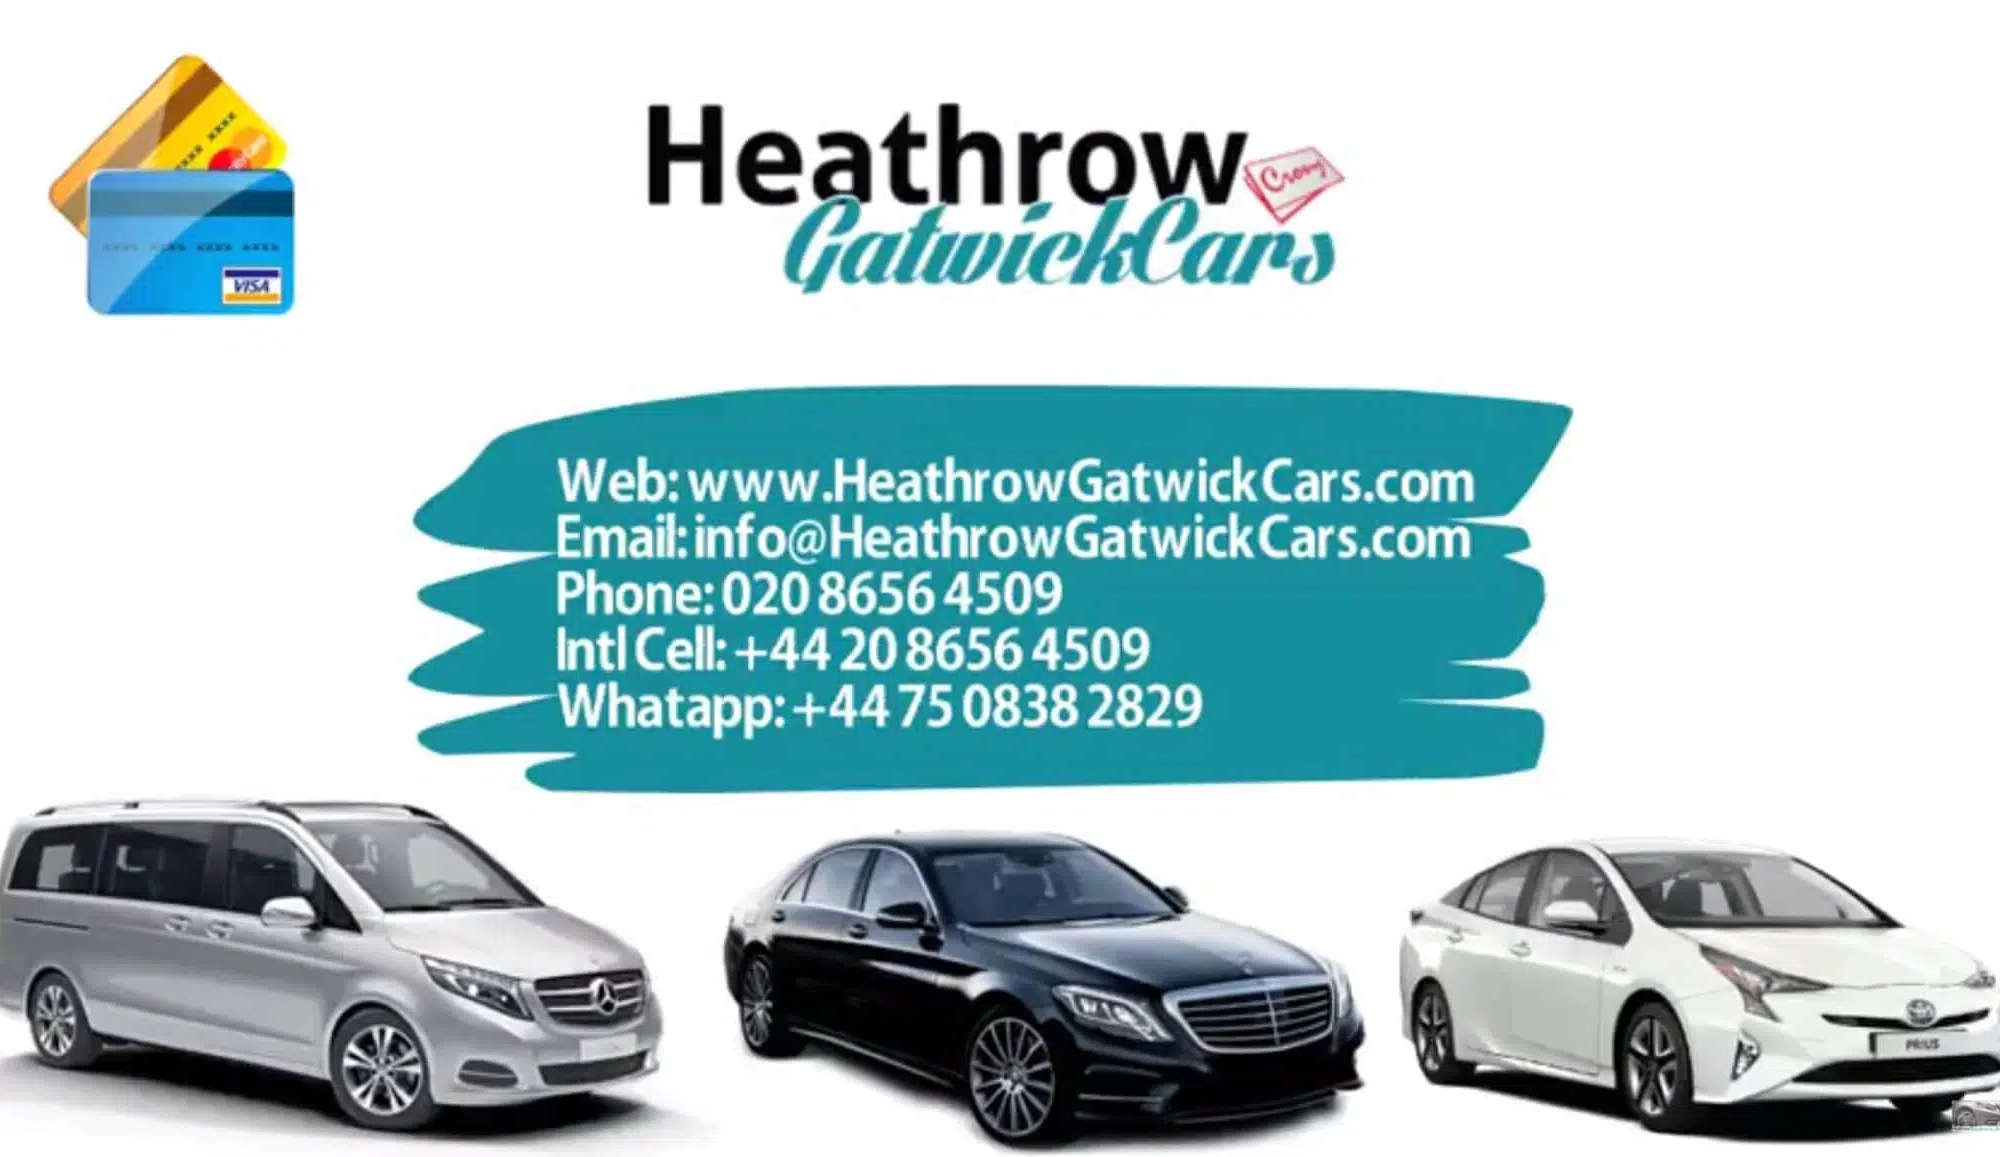 Heathrow Gatwick Cars - British Airport Transfers UK London Taxis Cabs